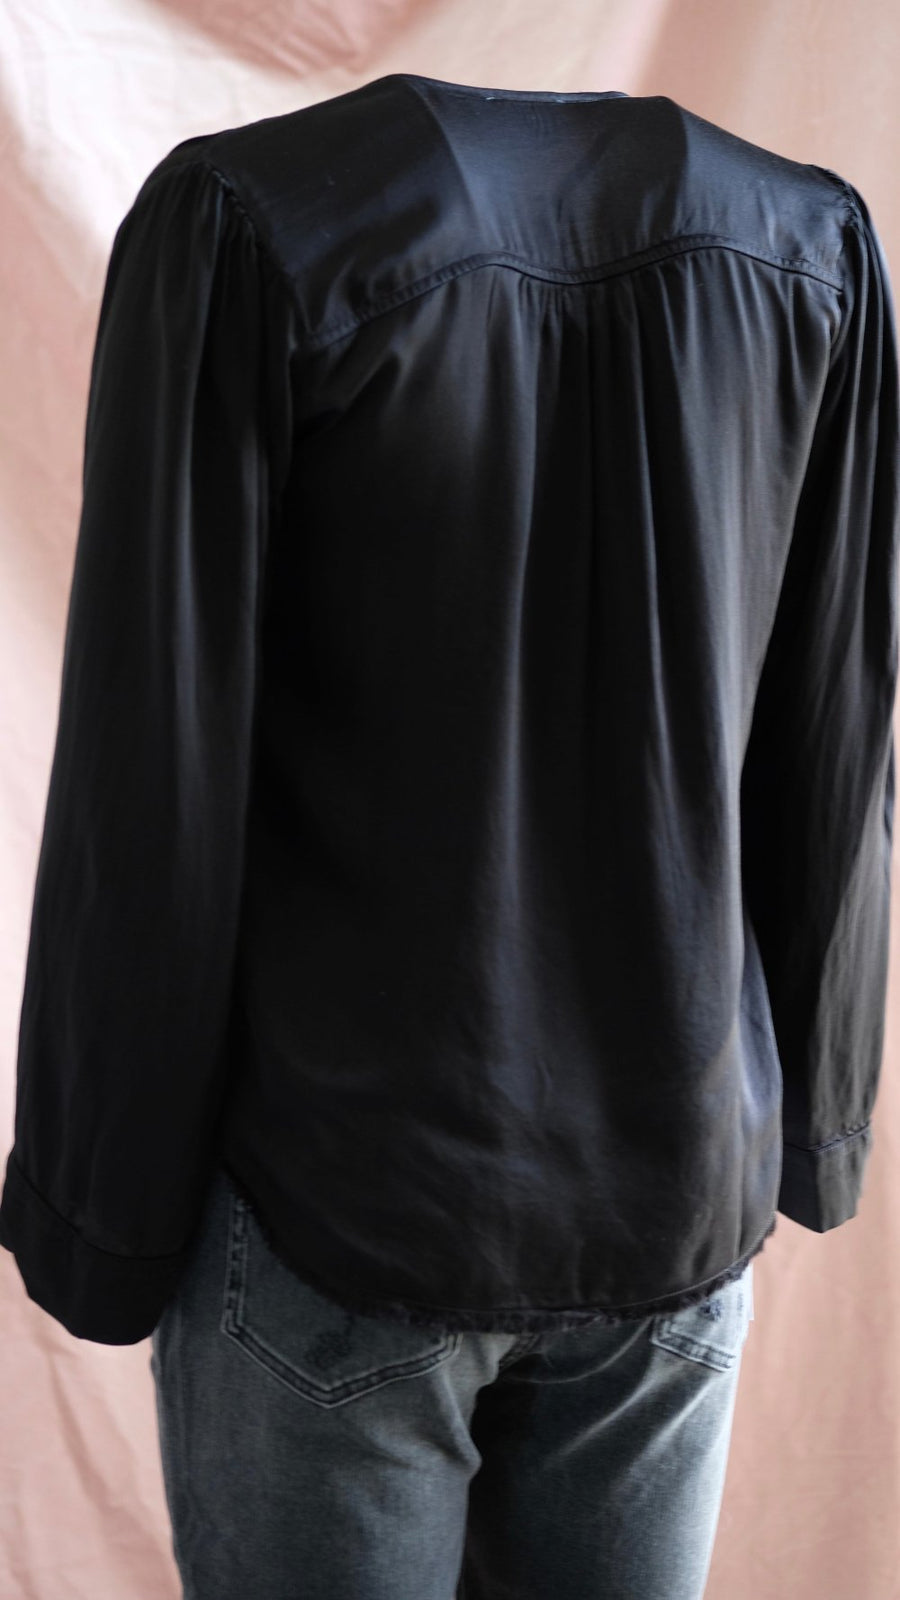 Black Maura Top by Nation LTD